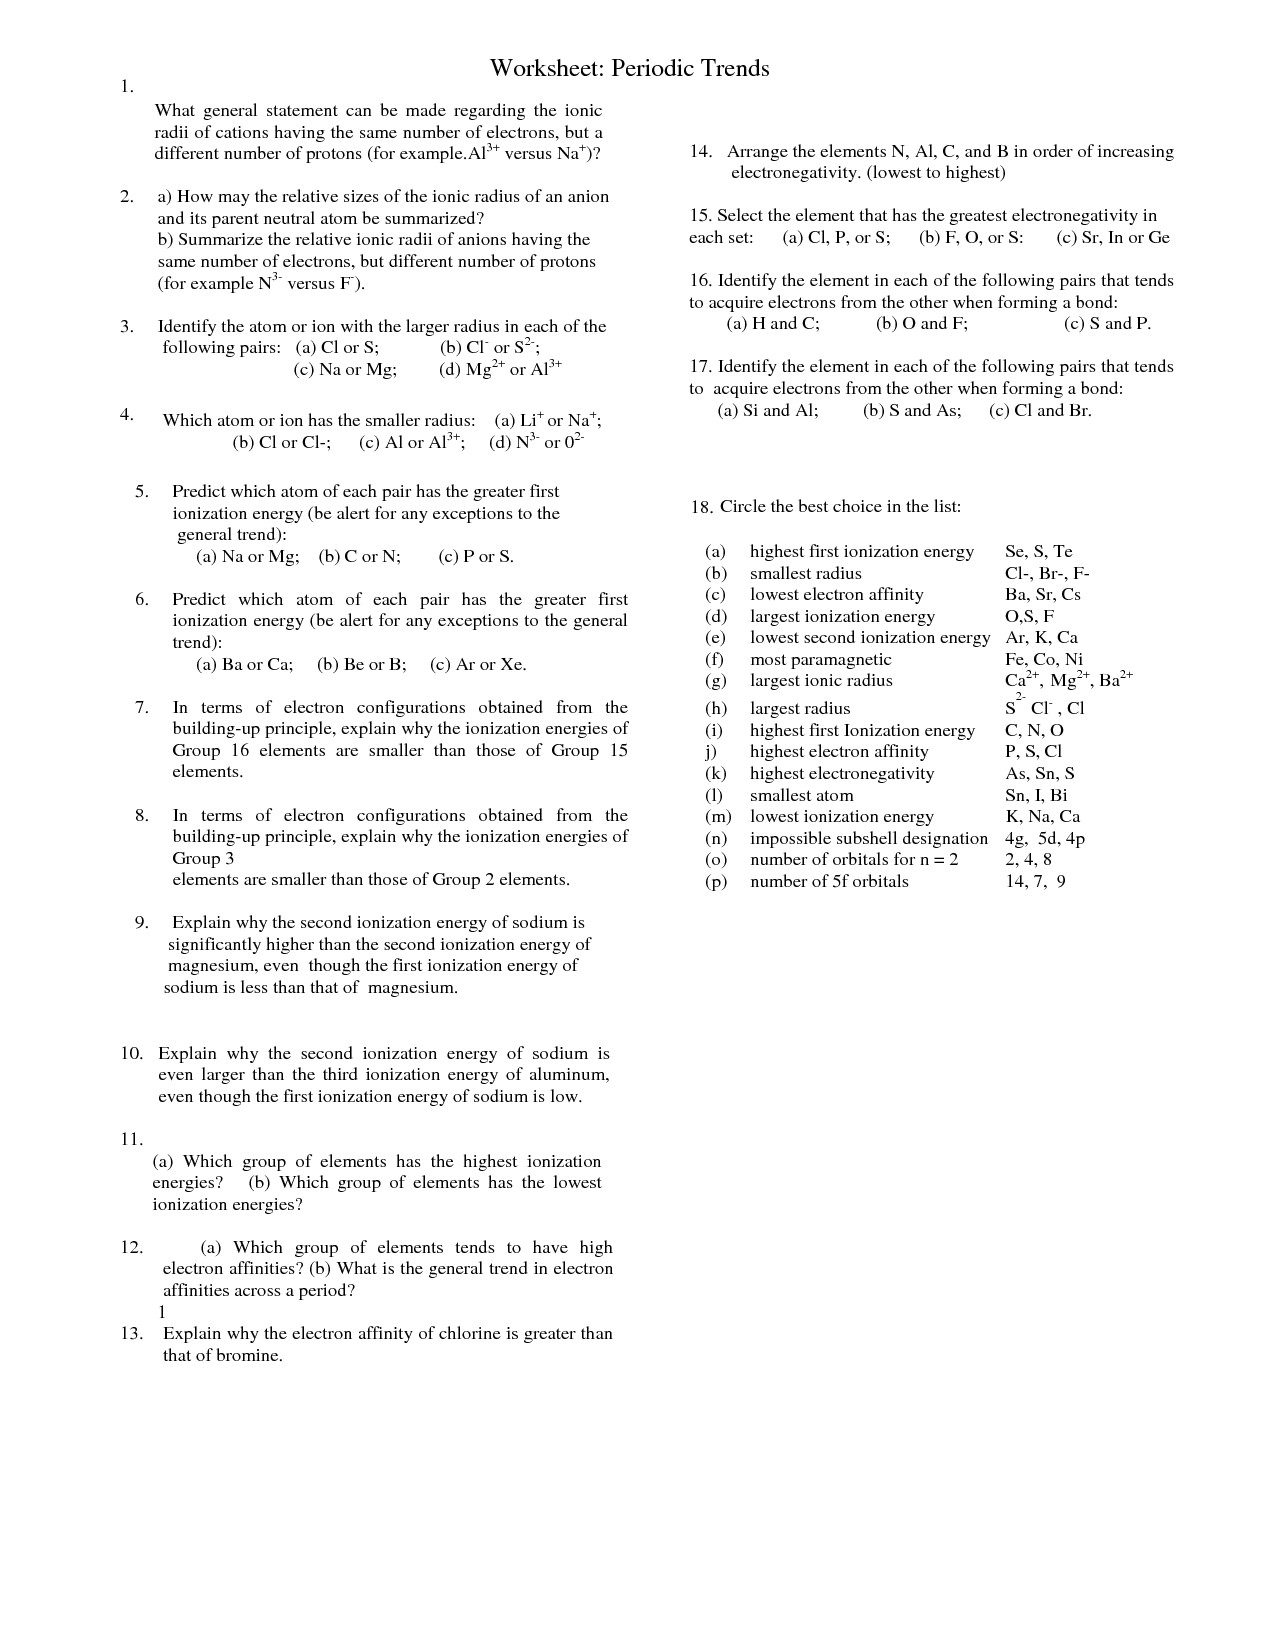 30 Worksheet Periodic Trends Answers